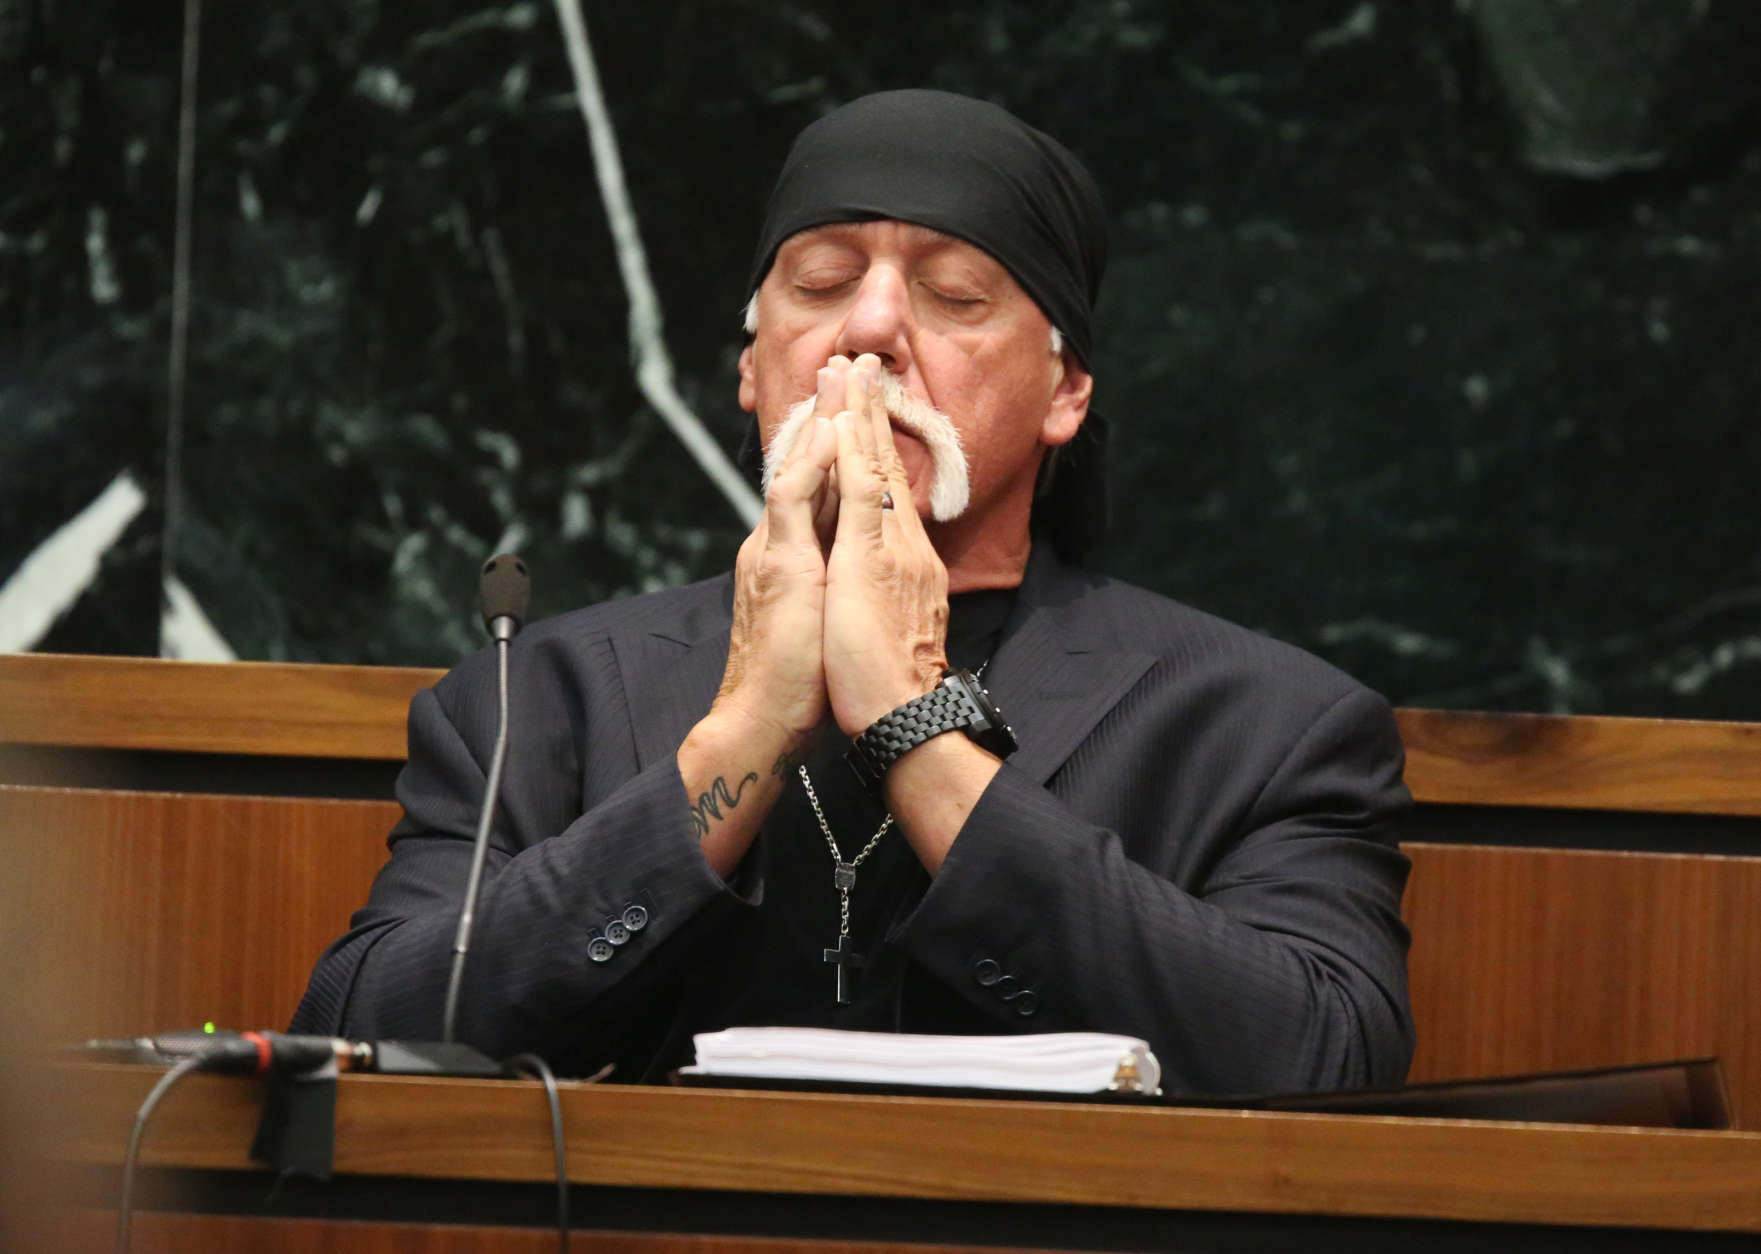 Hulk Hogan, whose given name is Terry Bollea, takes a moment as attorneys talk to the judge in court on Tuesday, March 8, 2016, during his trial against Gawker Media, in St Petersburg, Fl. Hogan and his attorneys are suing Gawker for $100 million, saying that his privacy was violated, and he suffered emotional distress after Gawker posted one minute and forty one seconds of a sex tape filmed of Hogan and his then-best friend's wife. (John Pendygraft/Tampa Bay Times via AP, Pool) MANDATORY NY POST OUT